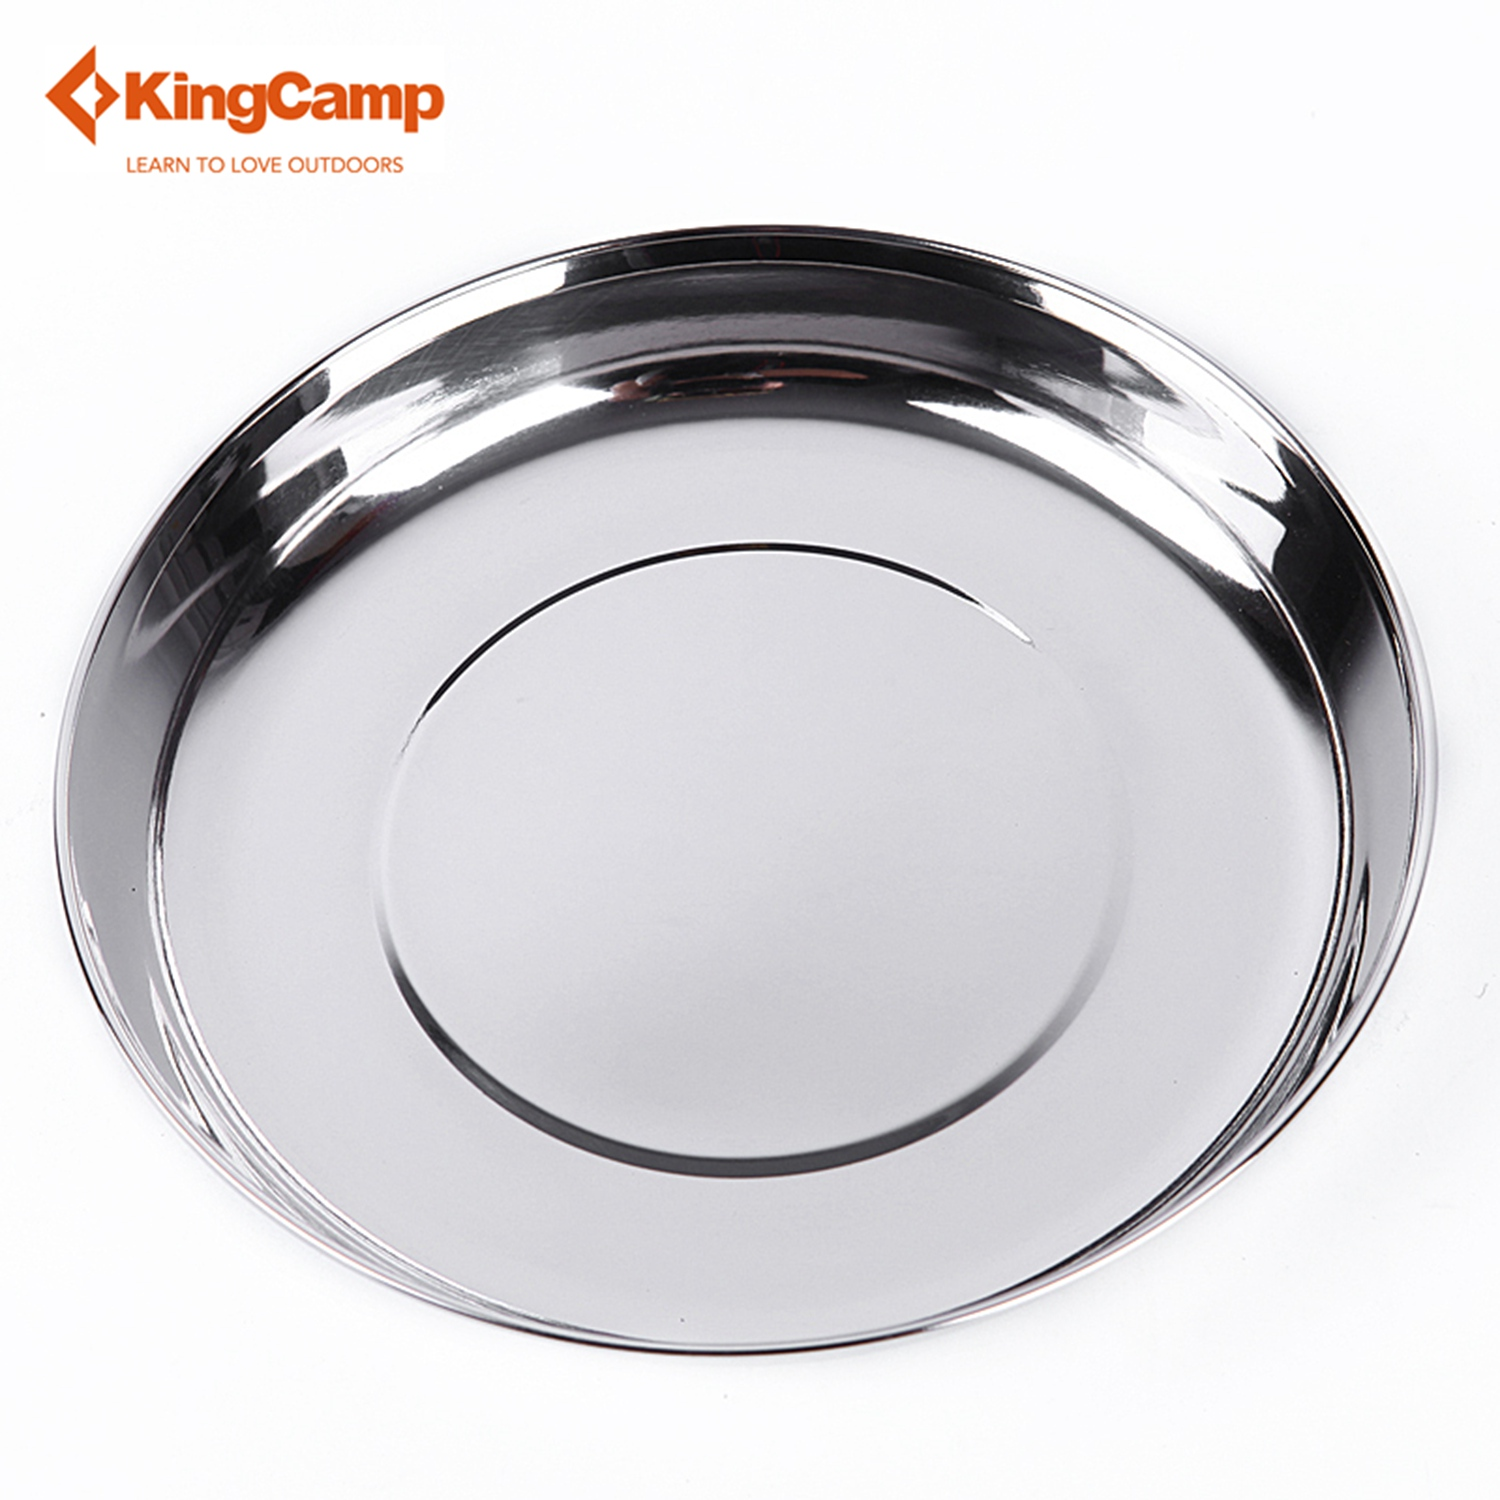 KingC& c&ing set t tableware Outdoor Stainless Steel Plate Portable C&ing Tableware Dia.6.97 inch-in Outdoor Tablewares from Sports u0026 Entertainment on ...  sc 1 st  AliExpress.com & KingCamp camping set t tableware Outdoor Stainless Steel Plate ...